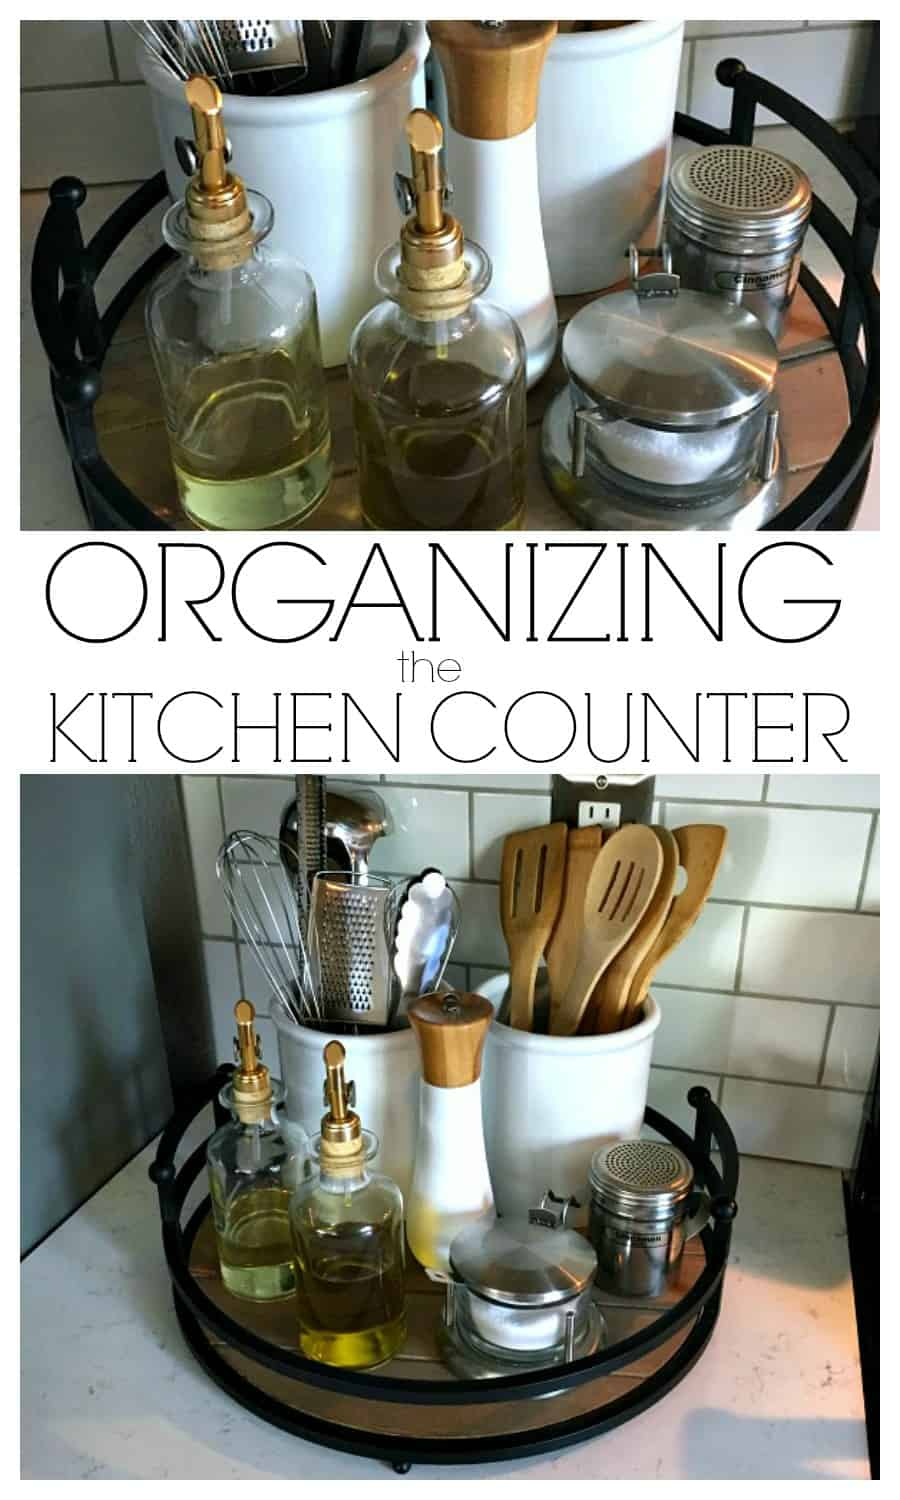 Organizing the Kitchen Counter - A simple tray and a few canisters is all you need. Click here to see how!